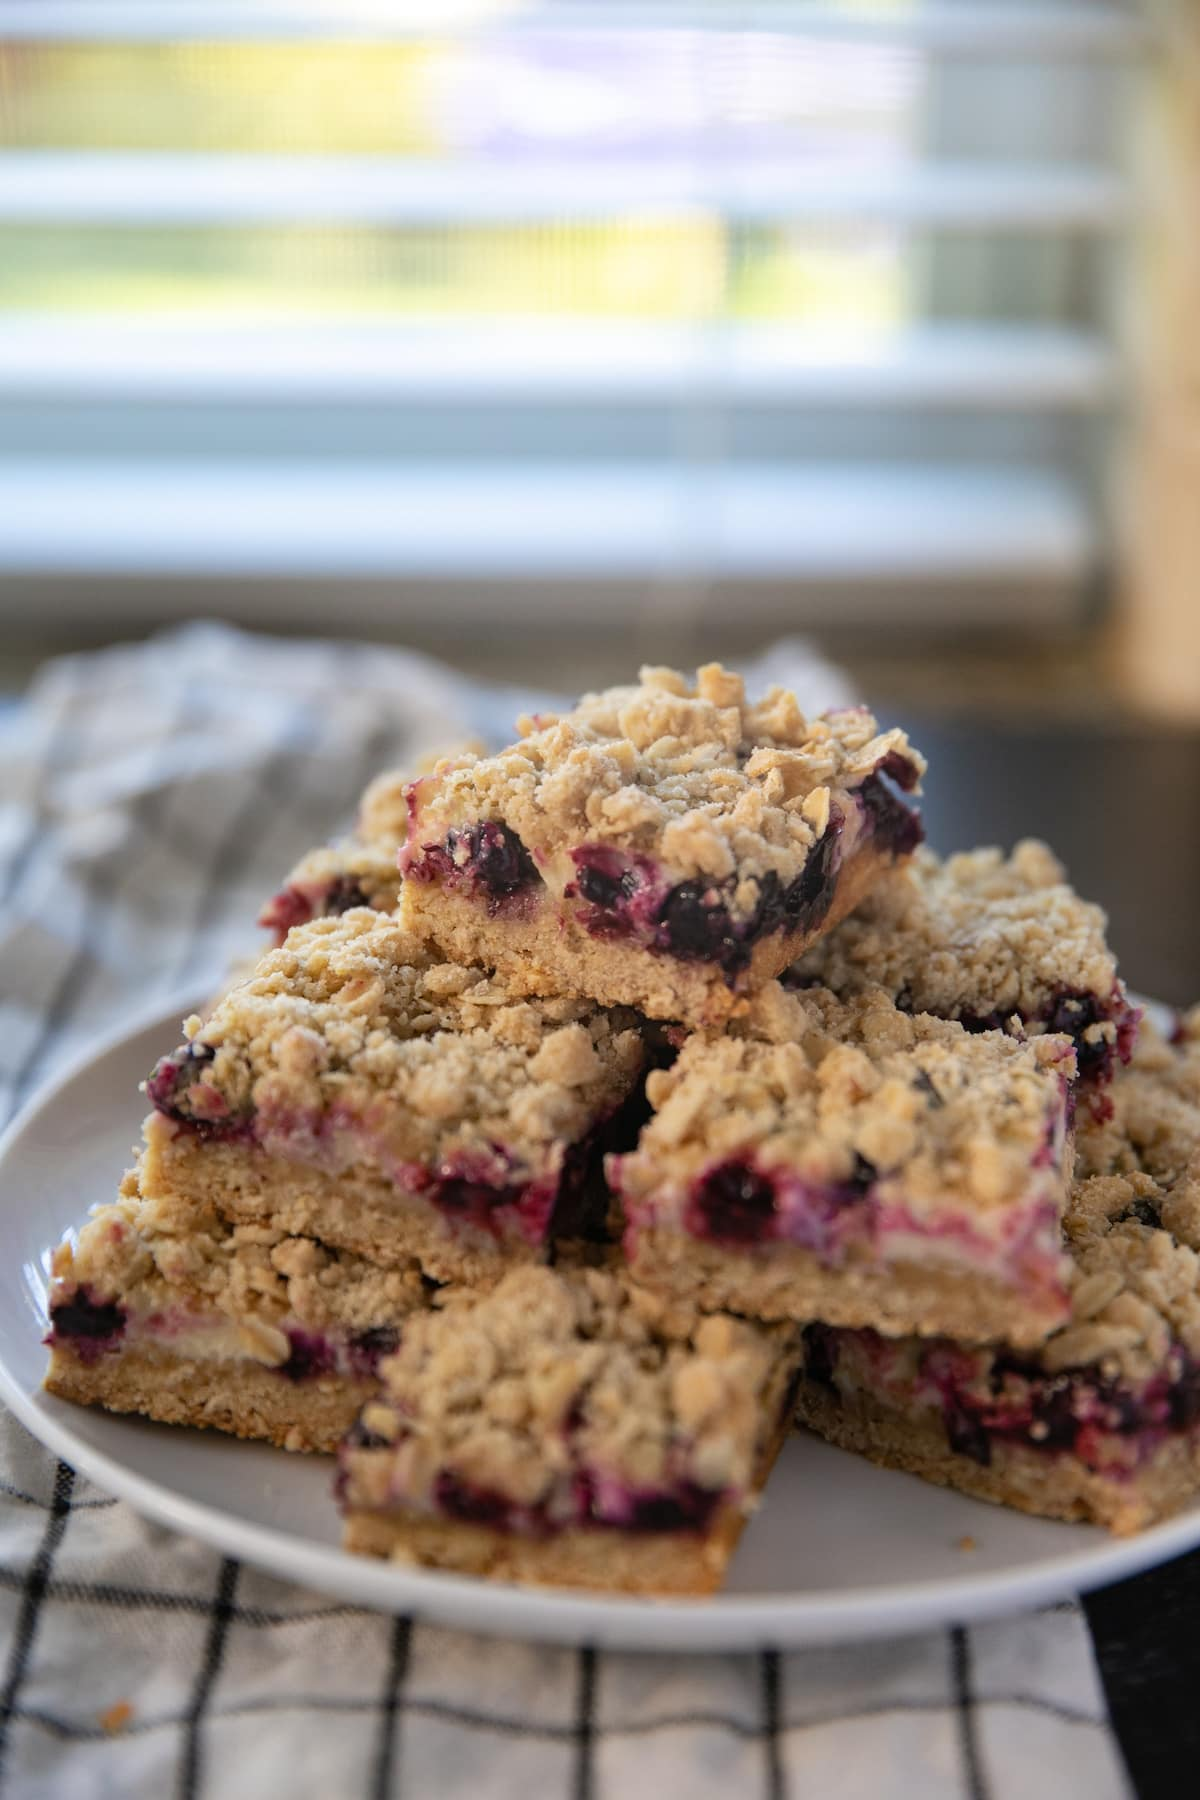 lemon blueberry bars stacked on top of each other on a white plate